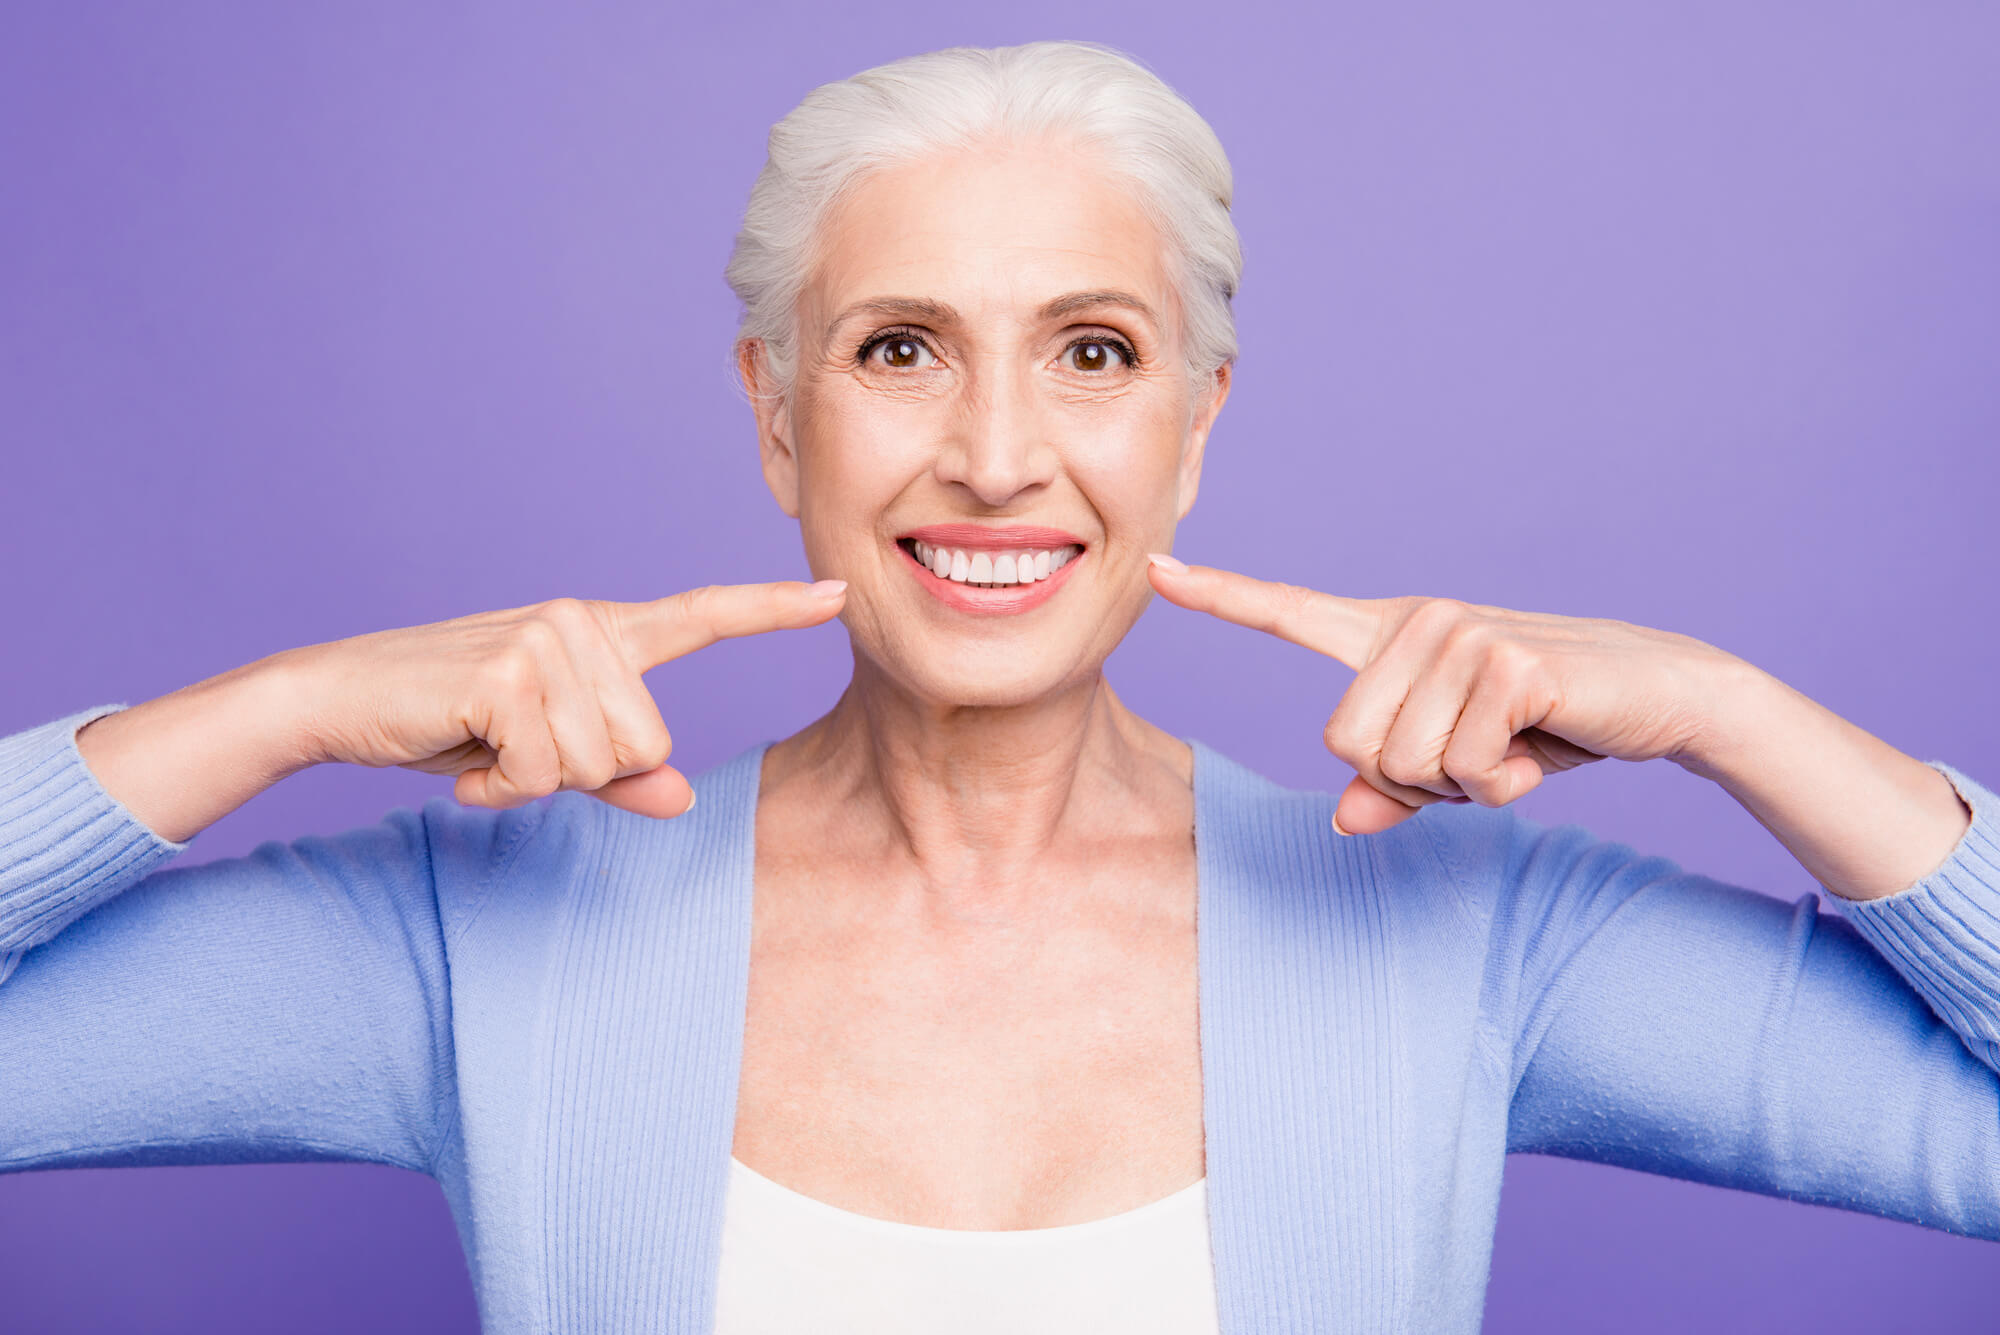 Tips for Cleaning Your Teeth and Dental Implants